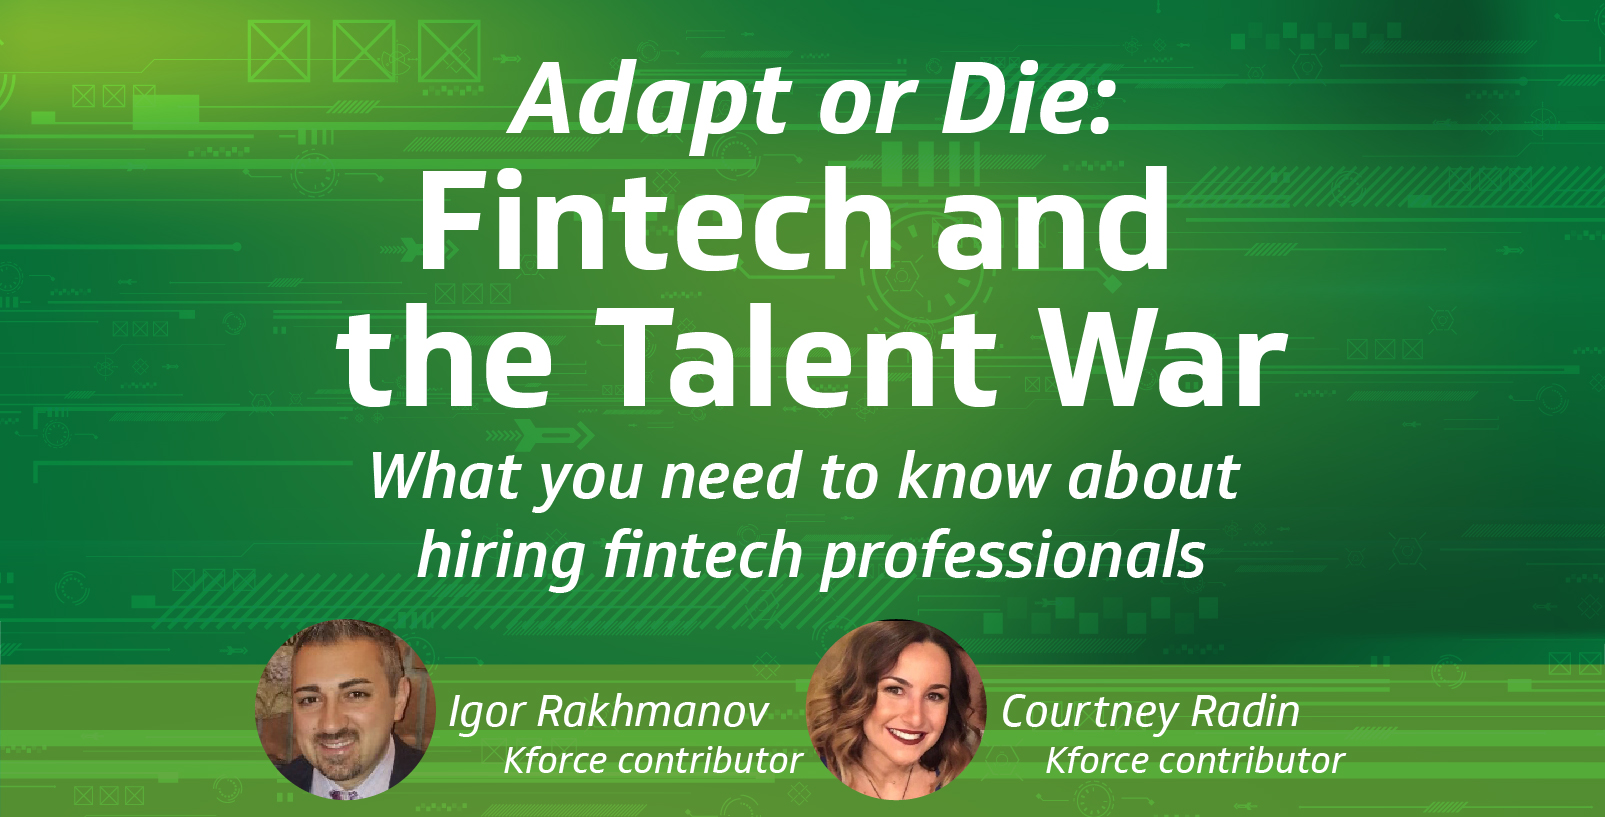 Adapt or die: Fintech and the talent war